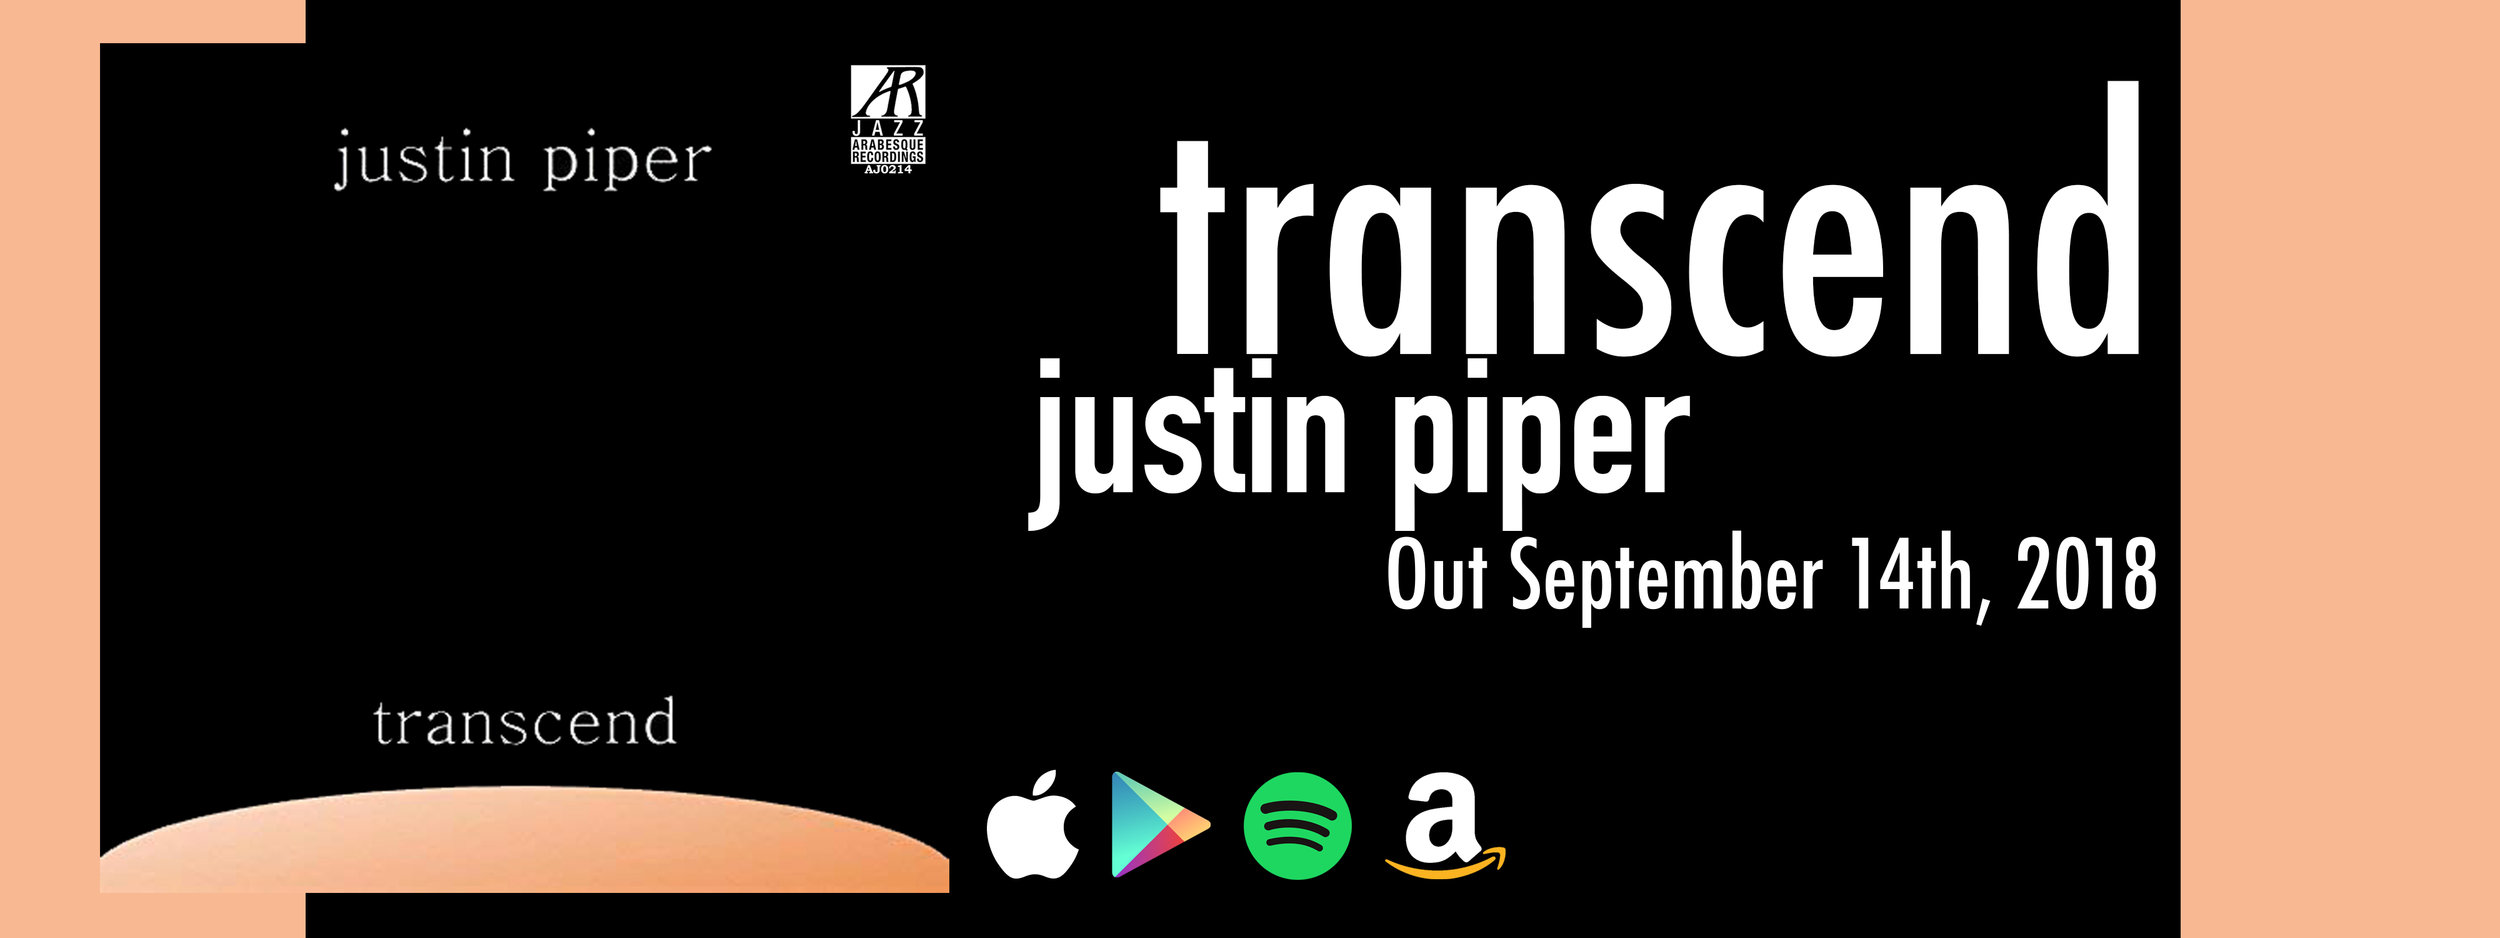 Justin Piper_Transcend Website Banner_Out September 14th.jpg